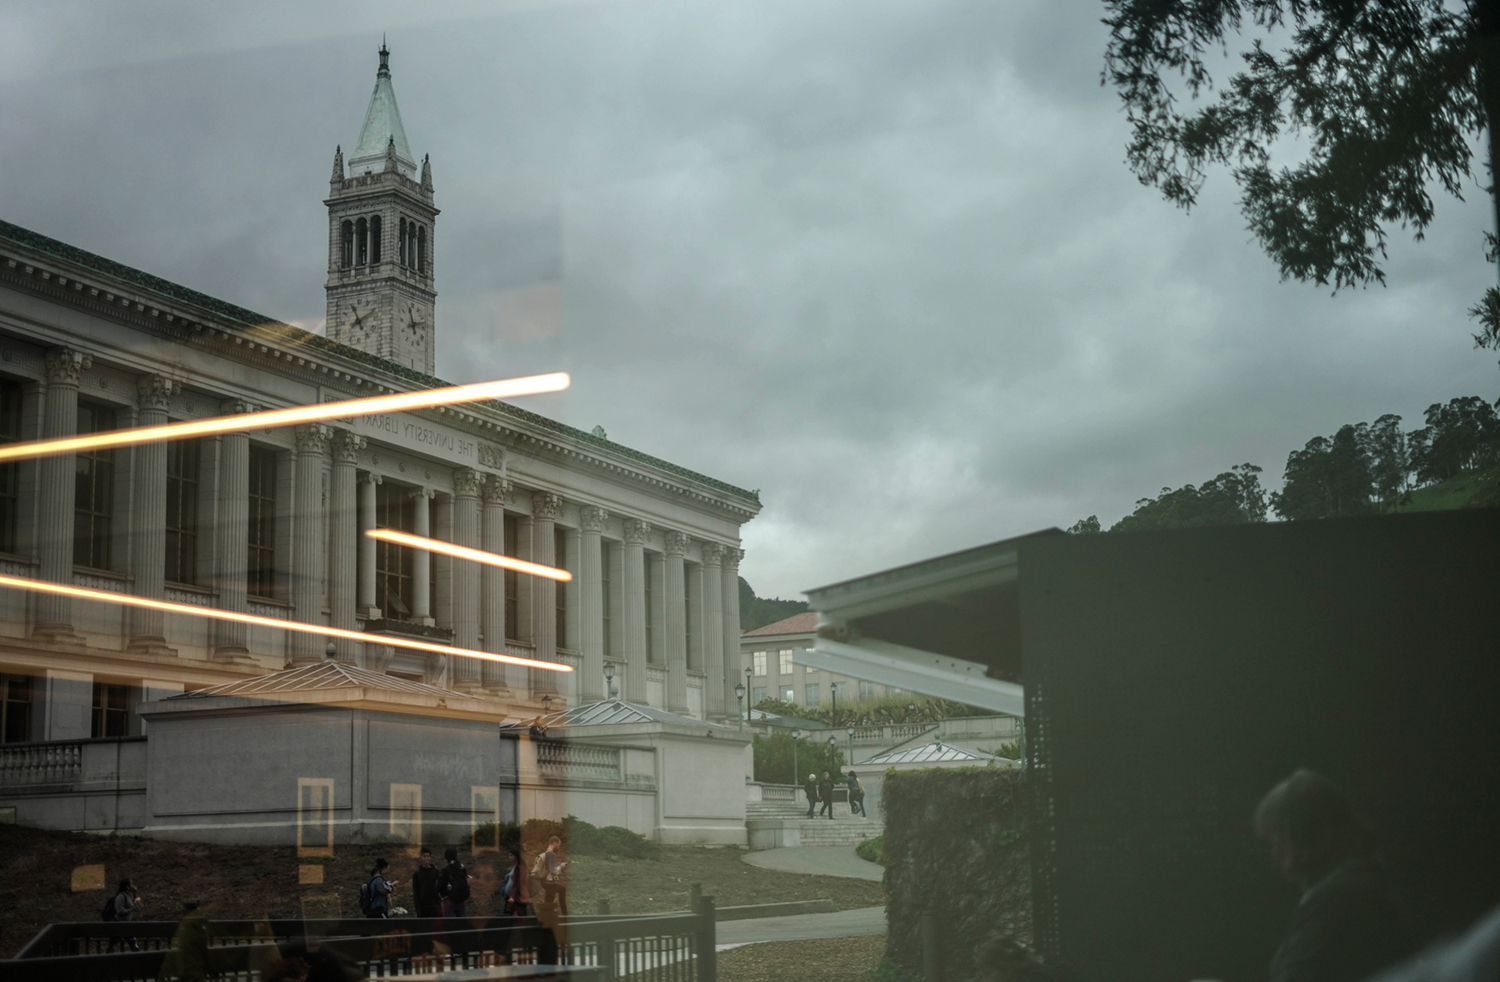 Doe Library reflected